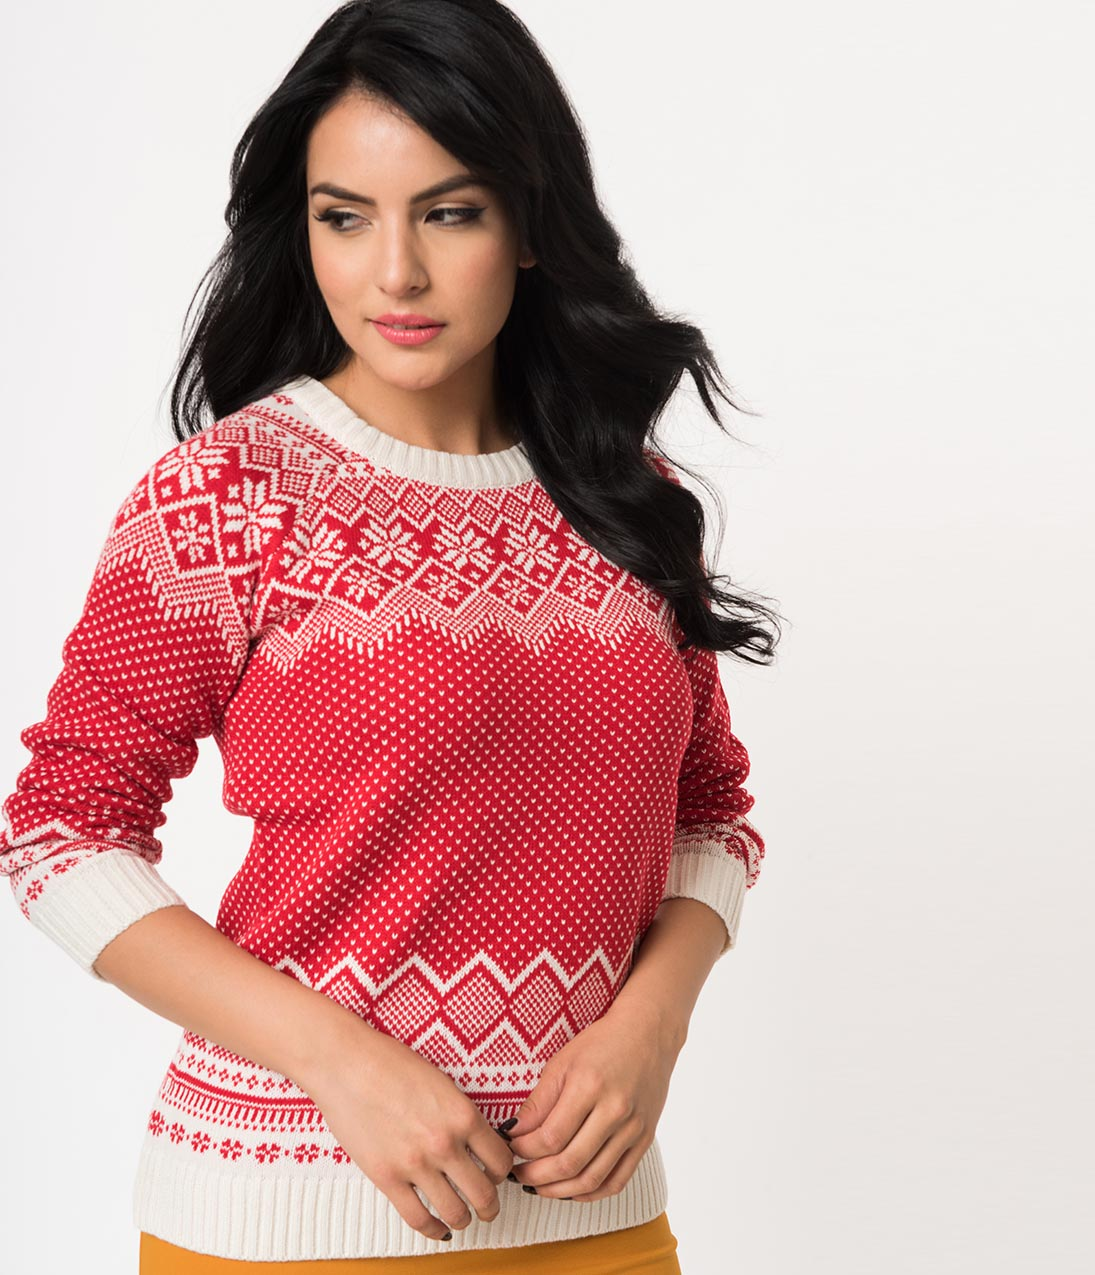 Vintage Sweaters: Cable Knit, Fair Isle Cardigans & Sweaters Vintage Style Red  White Snowflake Long Sleeve Knit Sweater $29.00 AT vintagedancer.com